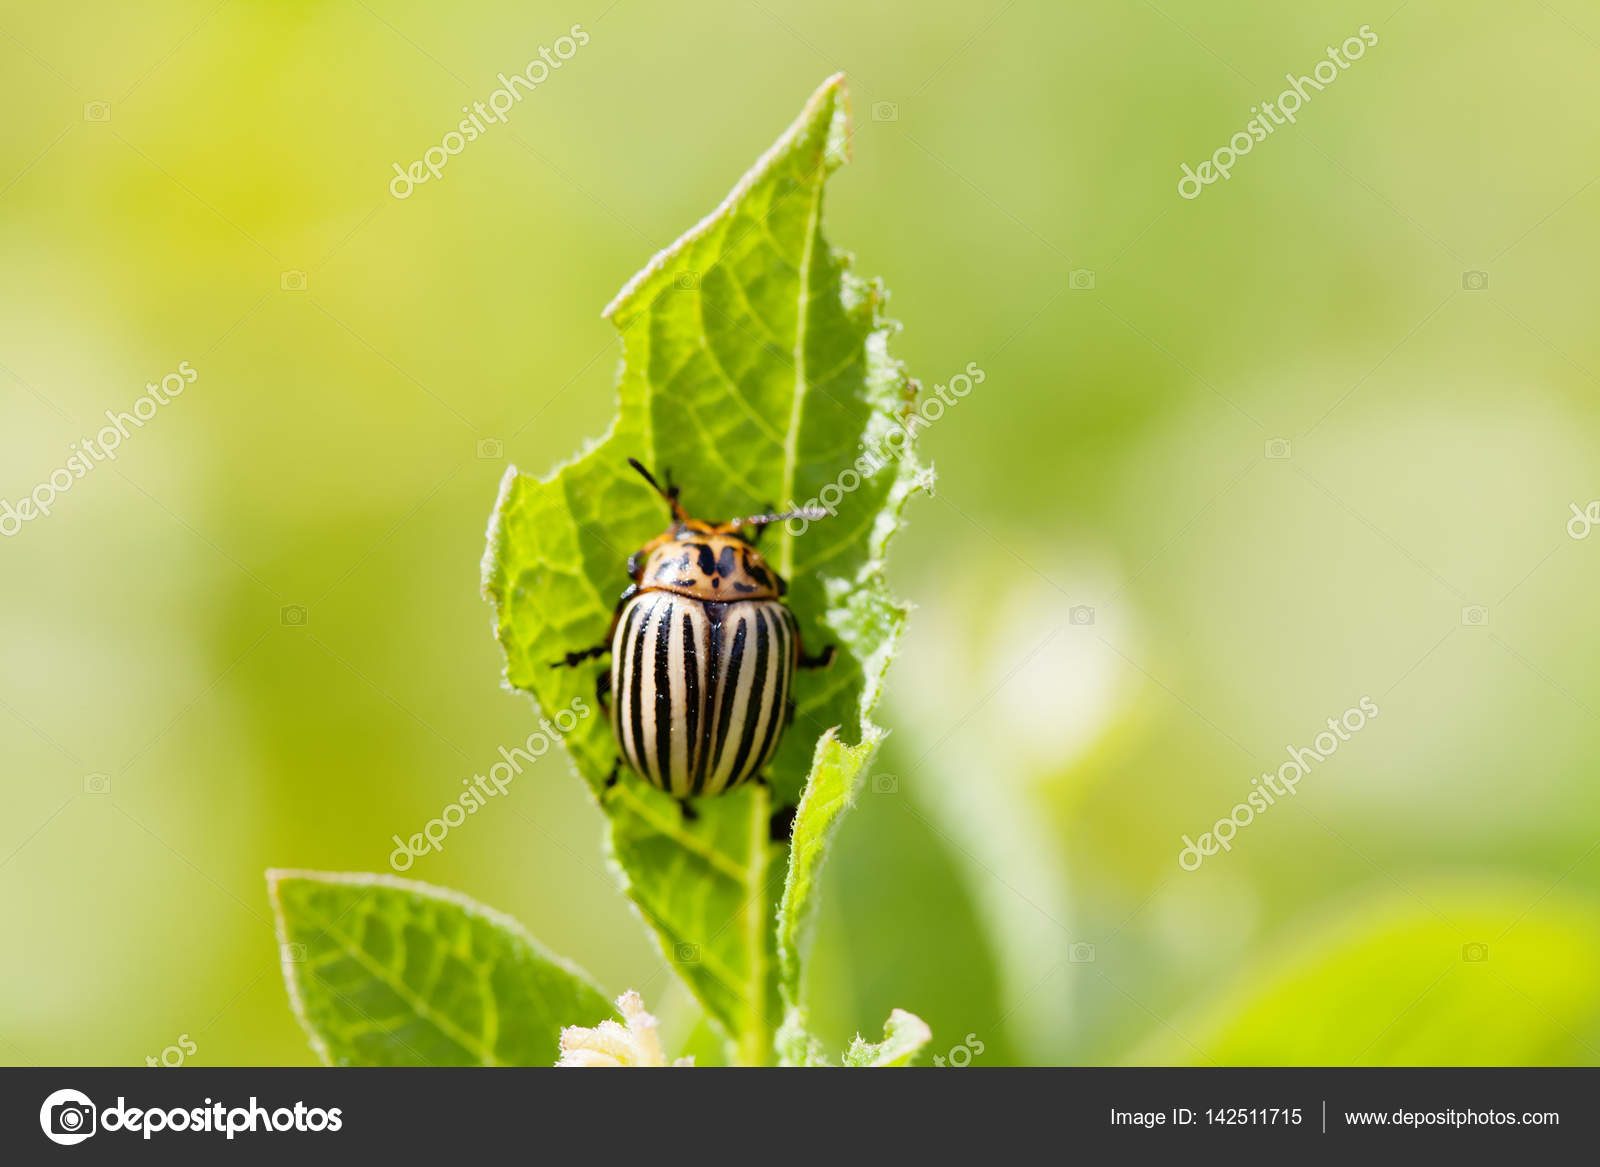 Colorado Potato Beetle On Damaged Green Leaf Macro View Insect Pest Use Selective Focus In Photography For Dummies Shallow Depth Of Field Photo By Besjunior